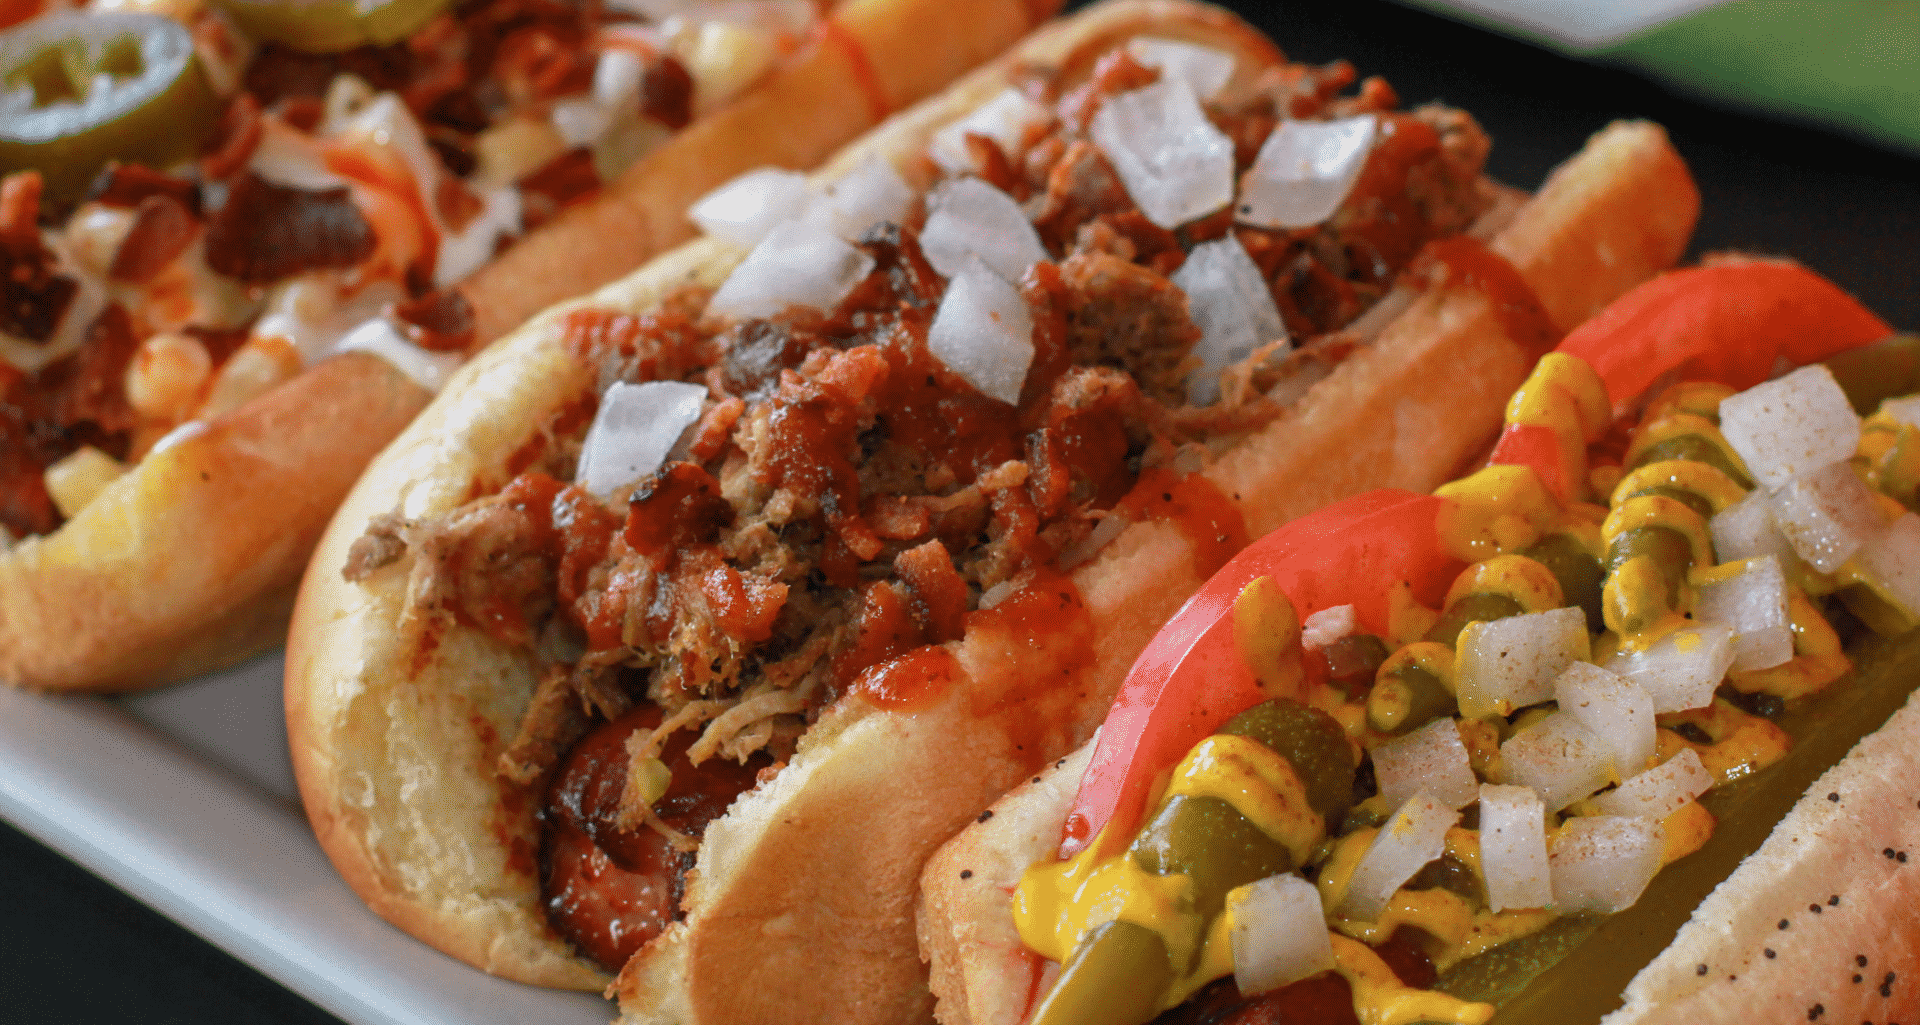 where to find good hot dogs in america